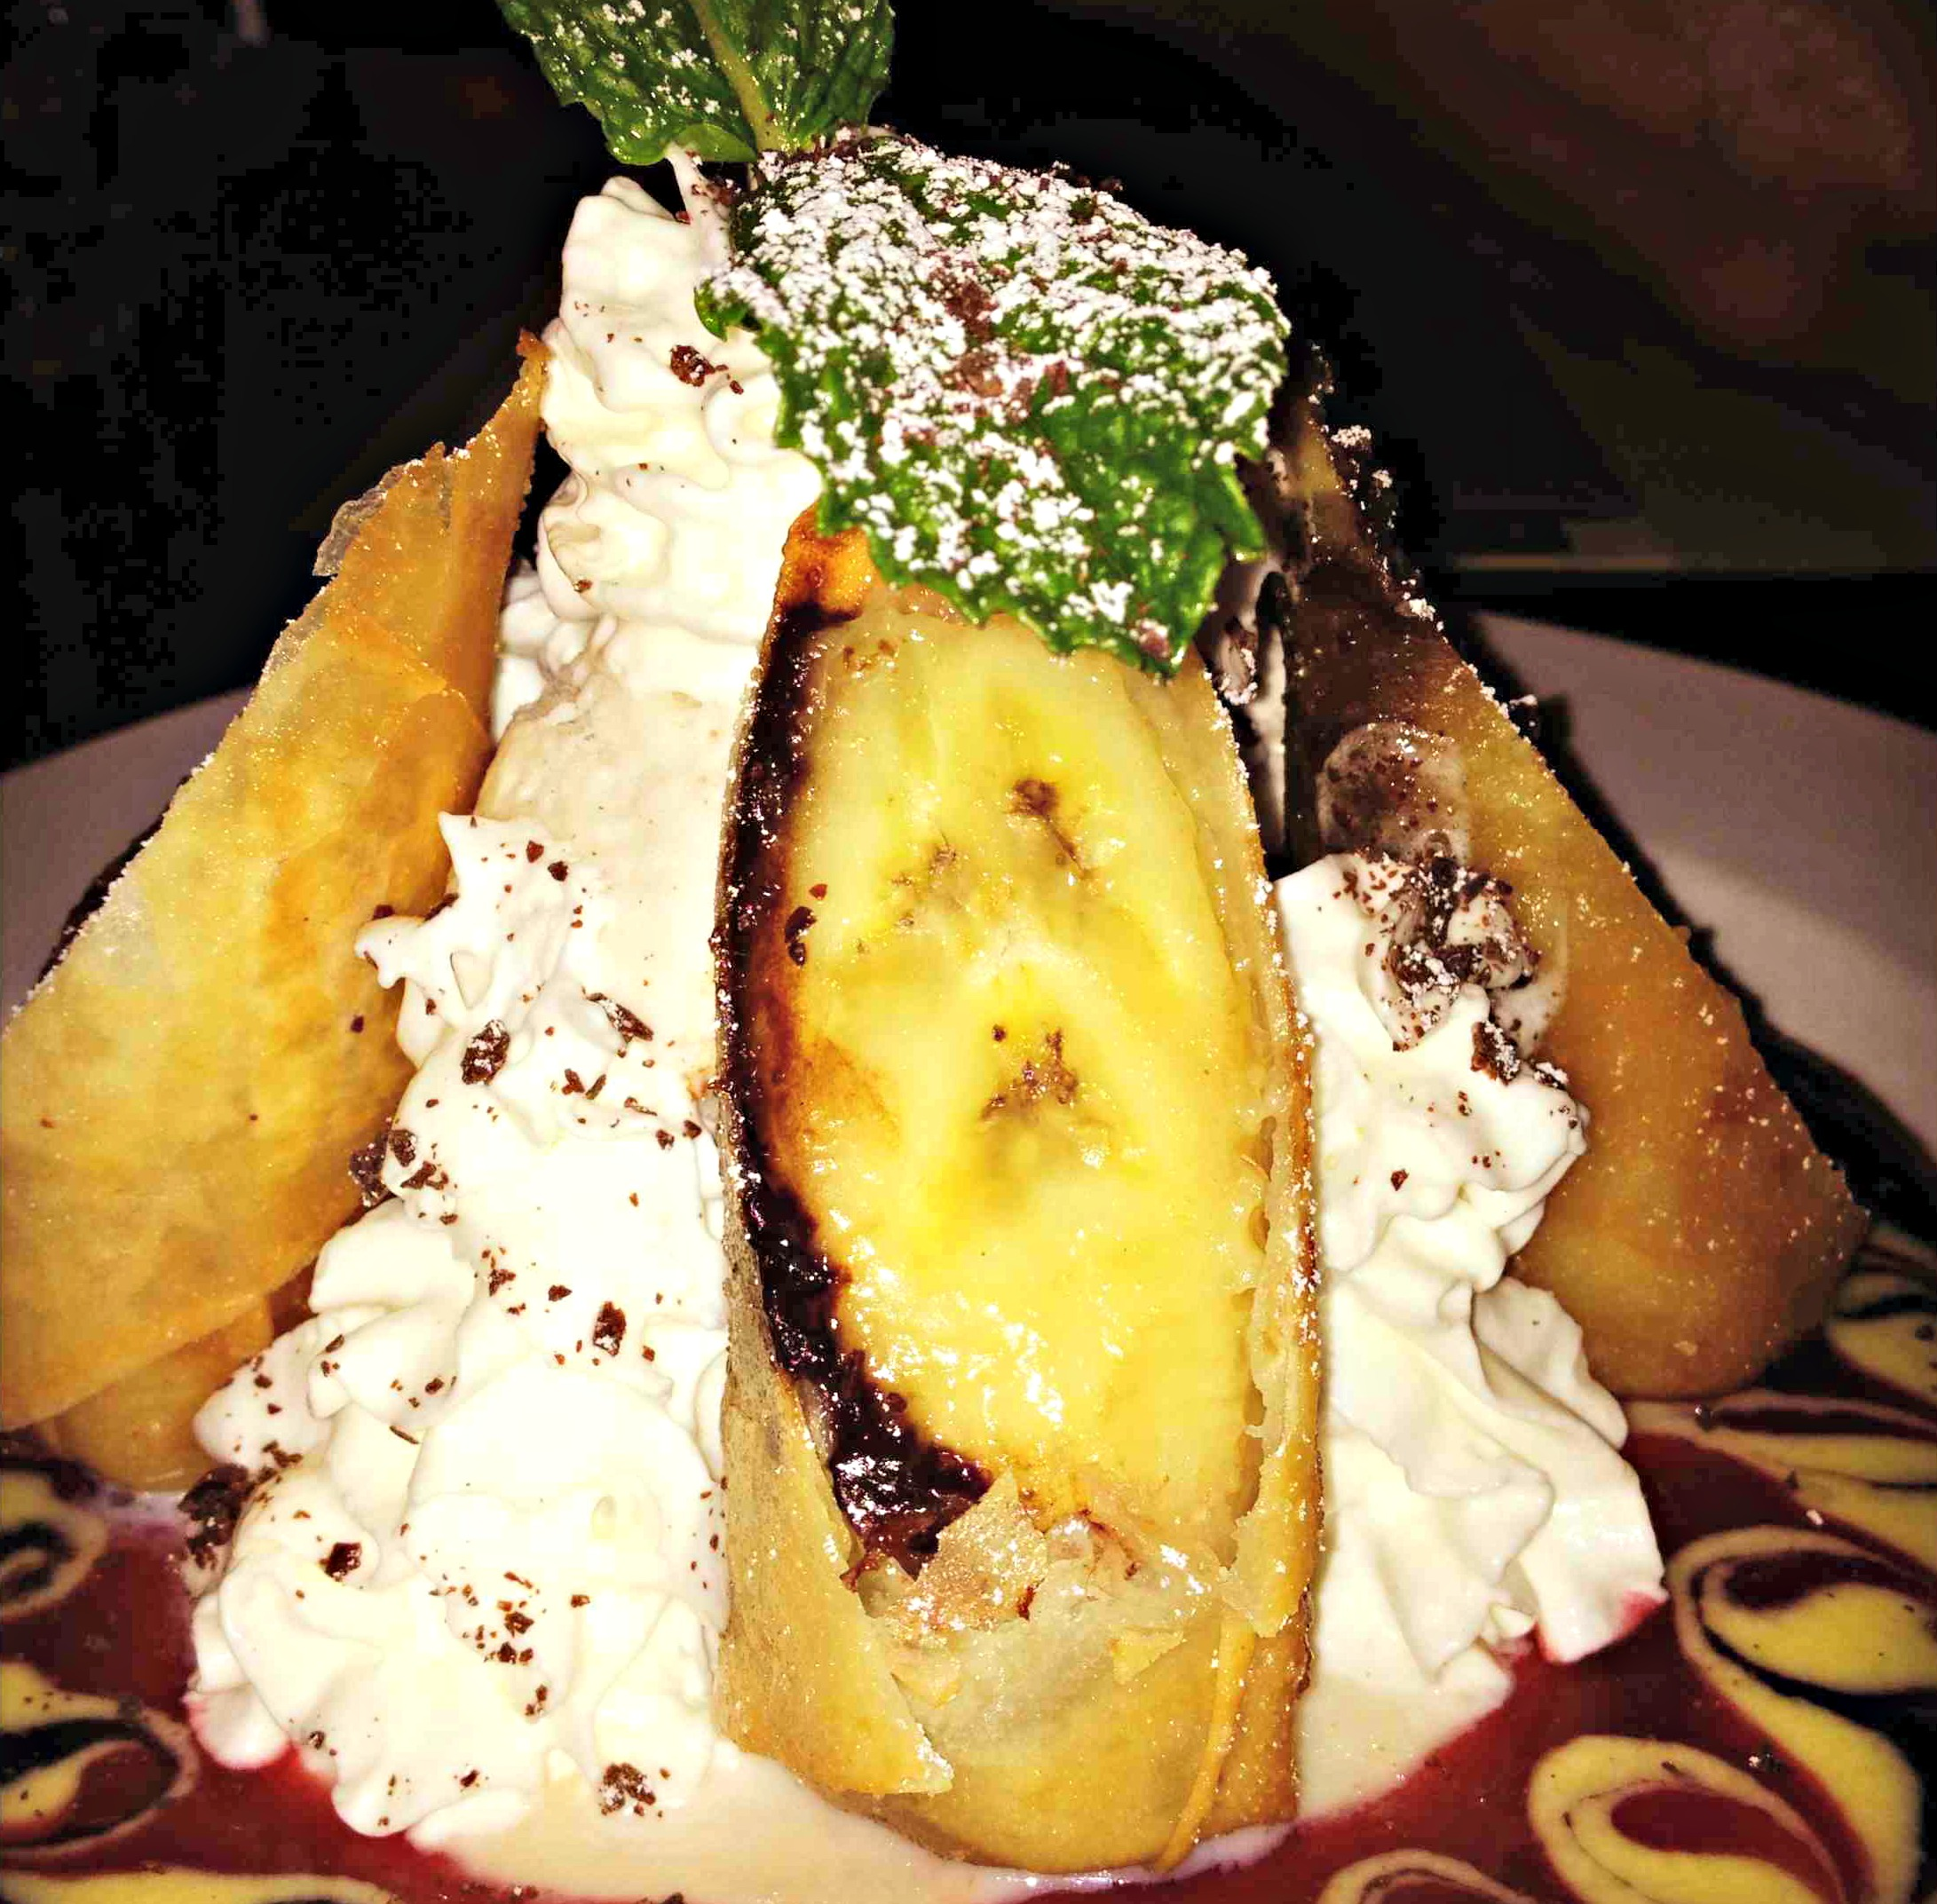 Banana Bomb: Tempura fried banana & dark chocolate wrapped in spring ...